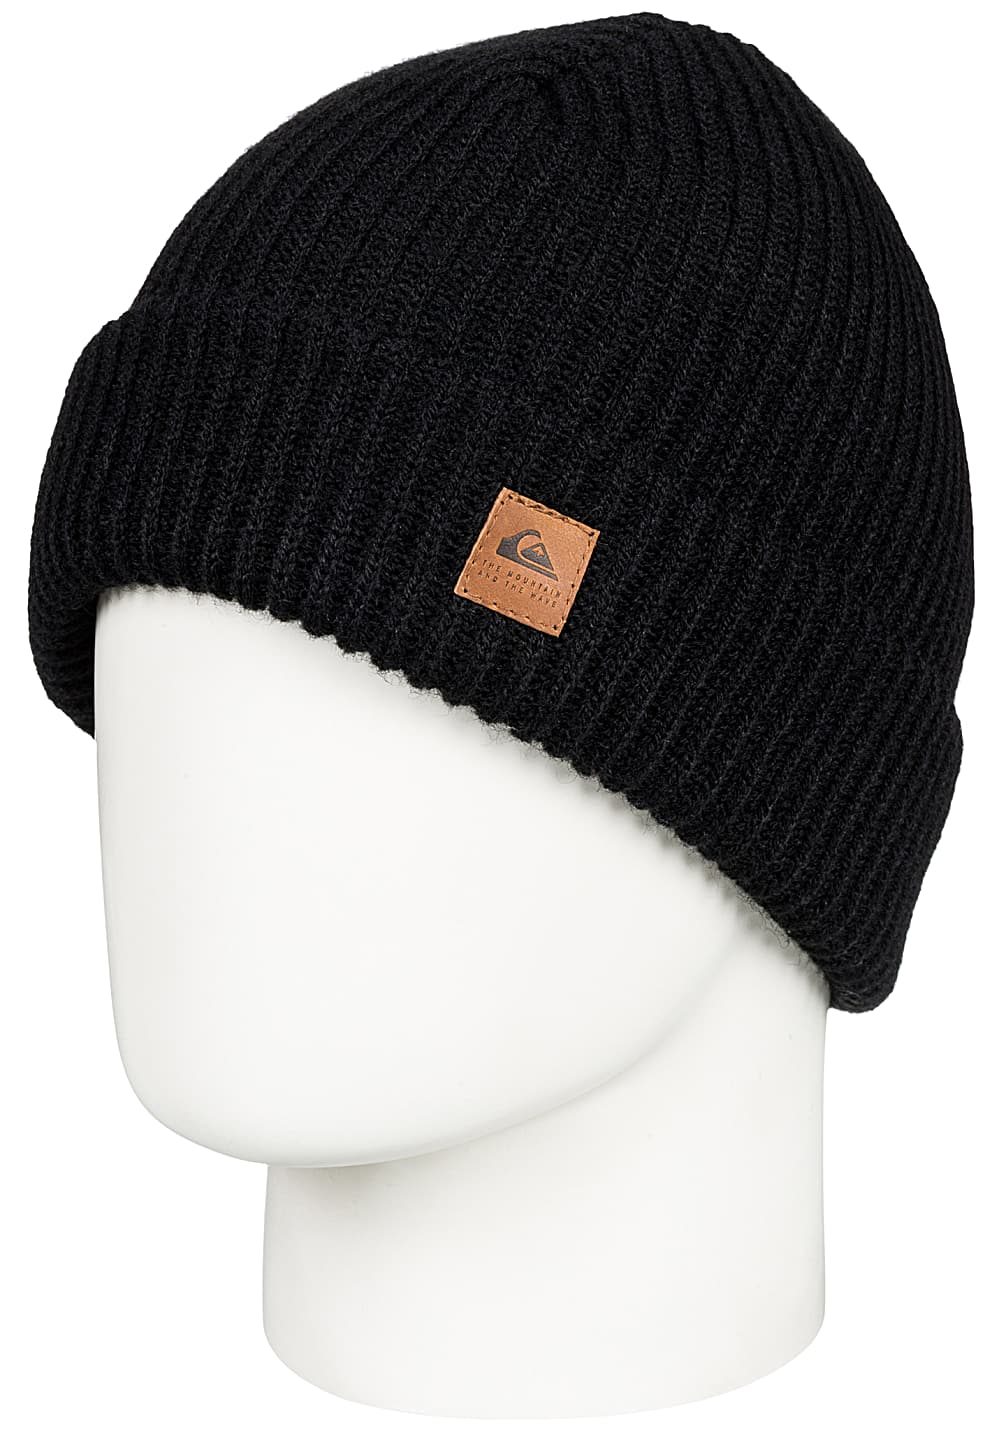 f5ef3bd97b2 Quiksilver Routine - Beanie for Men - Black - Planet Sports